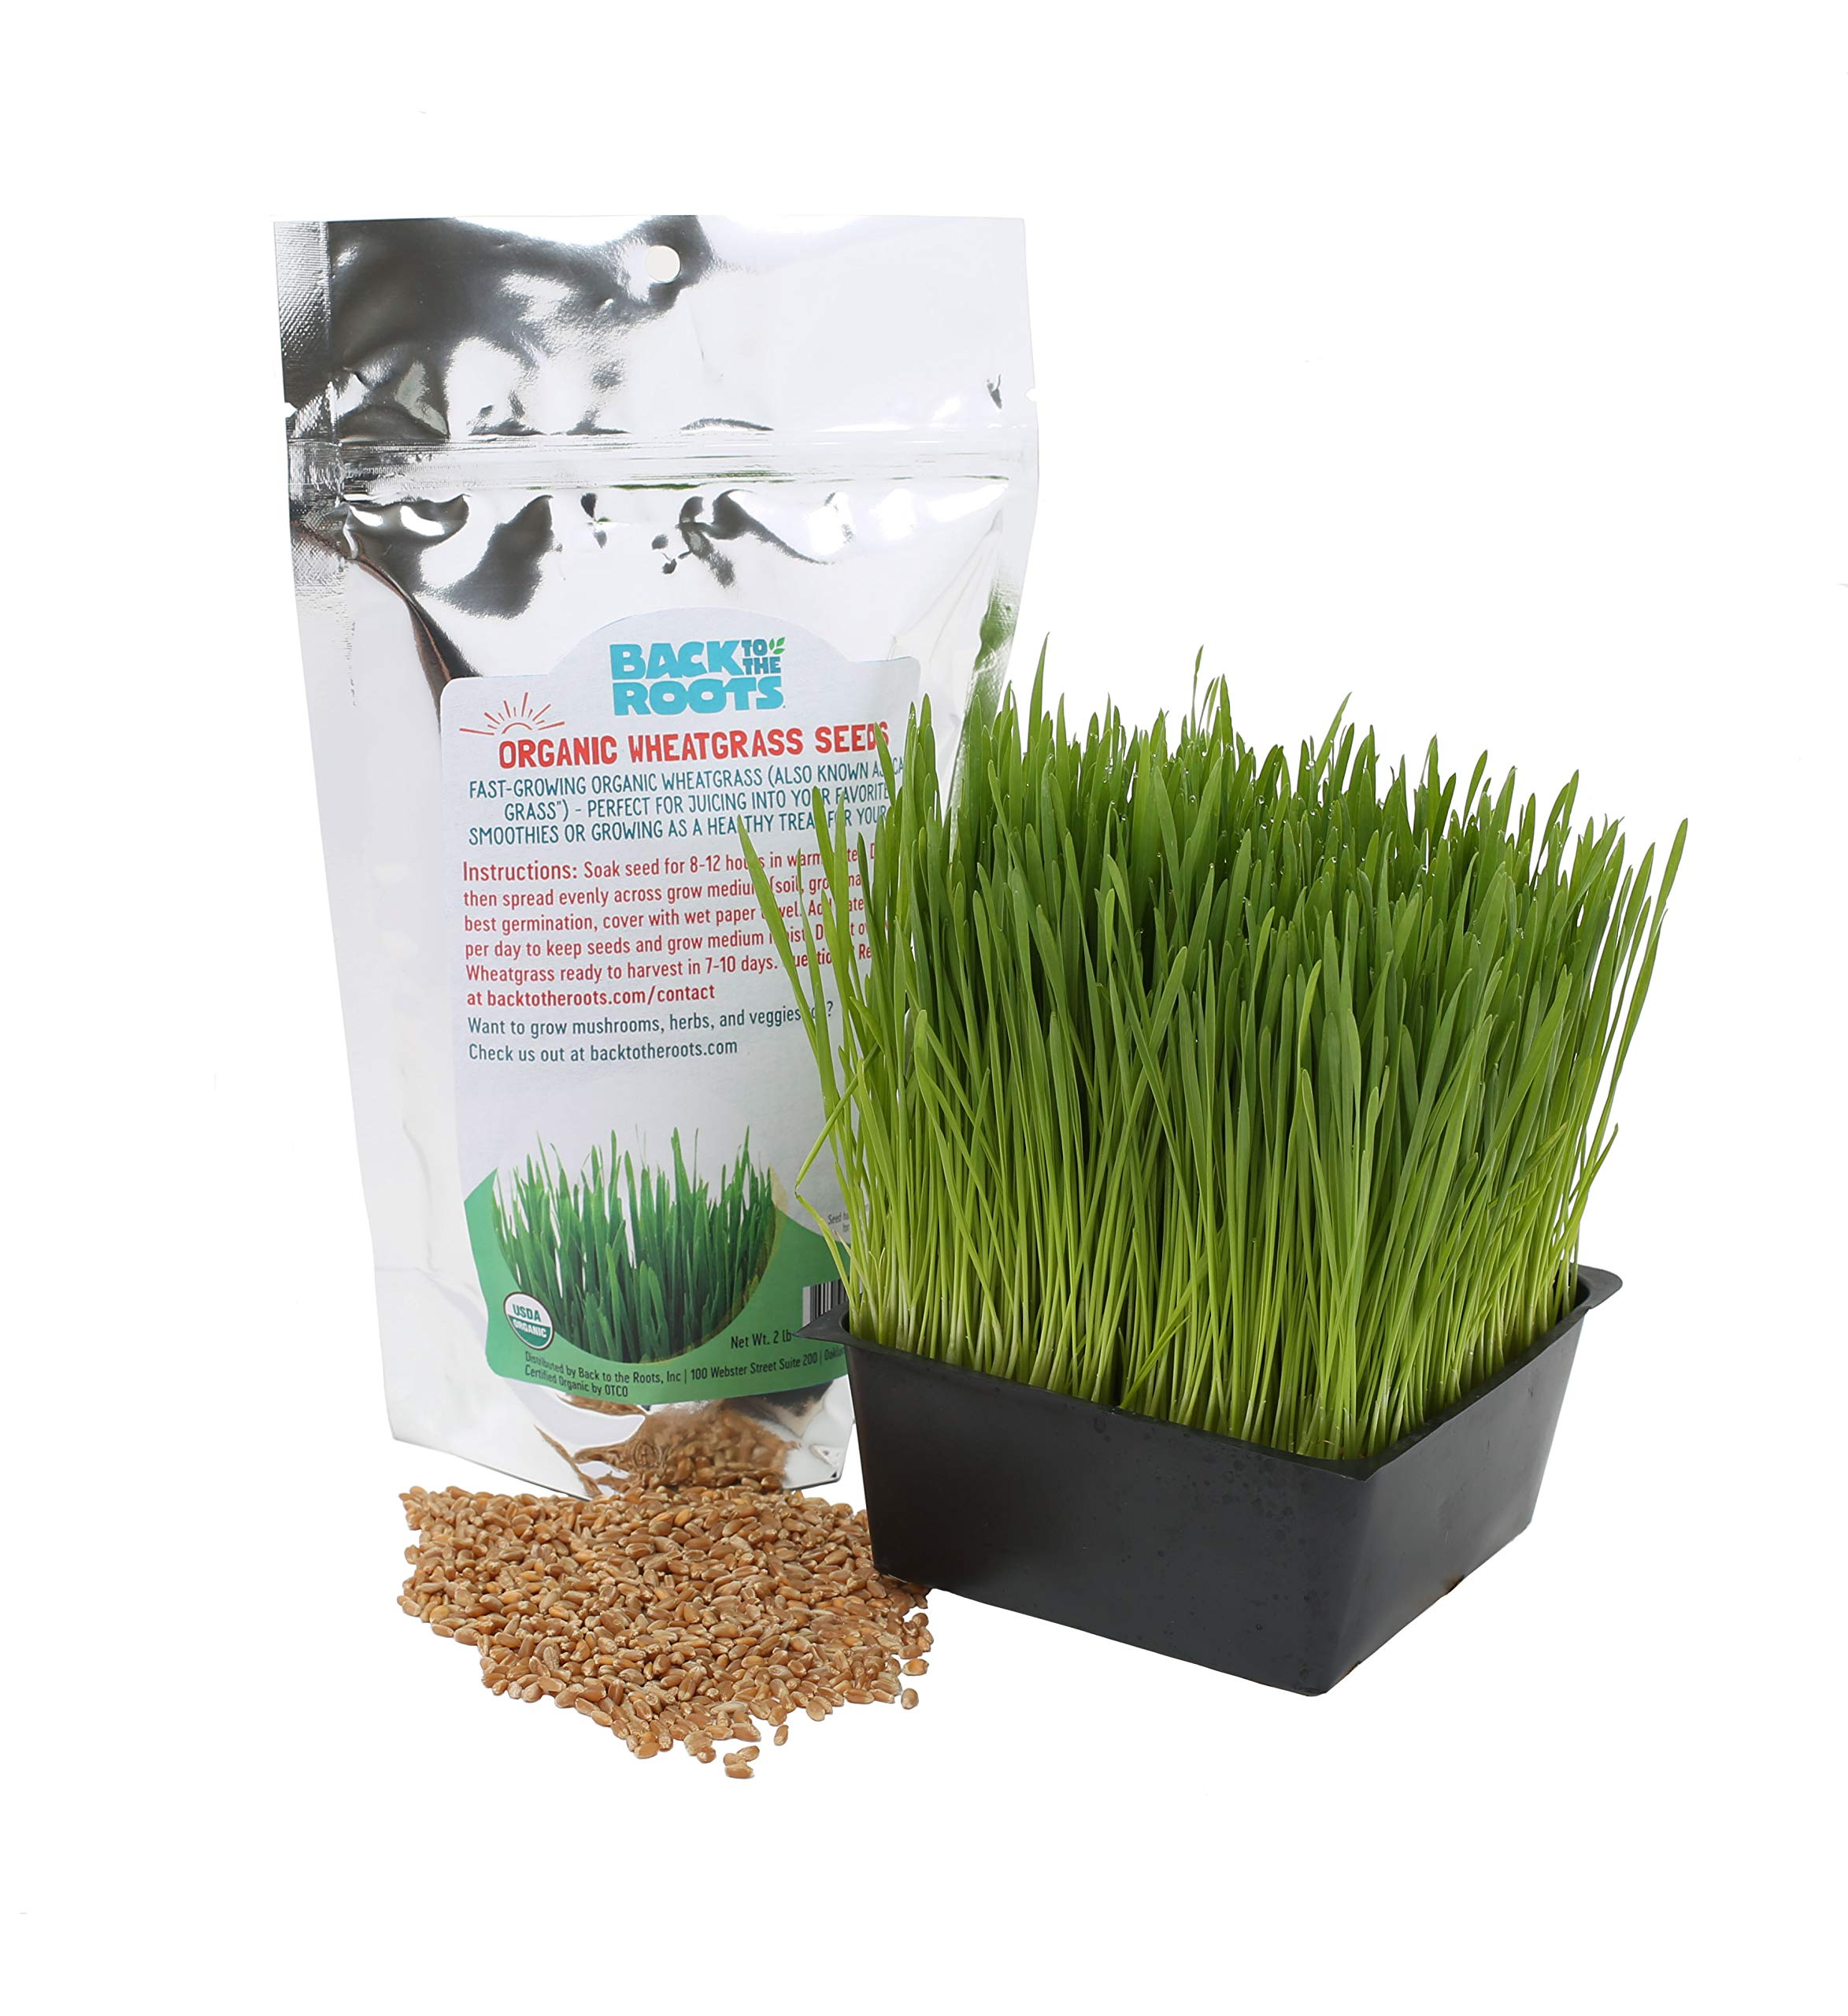 Organic 2lb Cat Wheatgrass Seeds by Back to the Roots - Non-GMO USDA Organic Indoor Growing Kit of Cat Grass Seeds for Natural Hairball Remedy for Cats by Back to the Roots